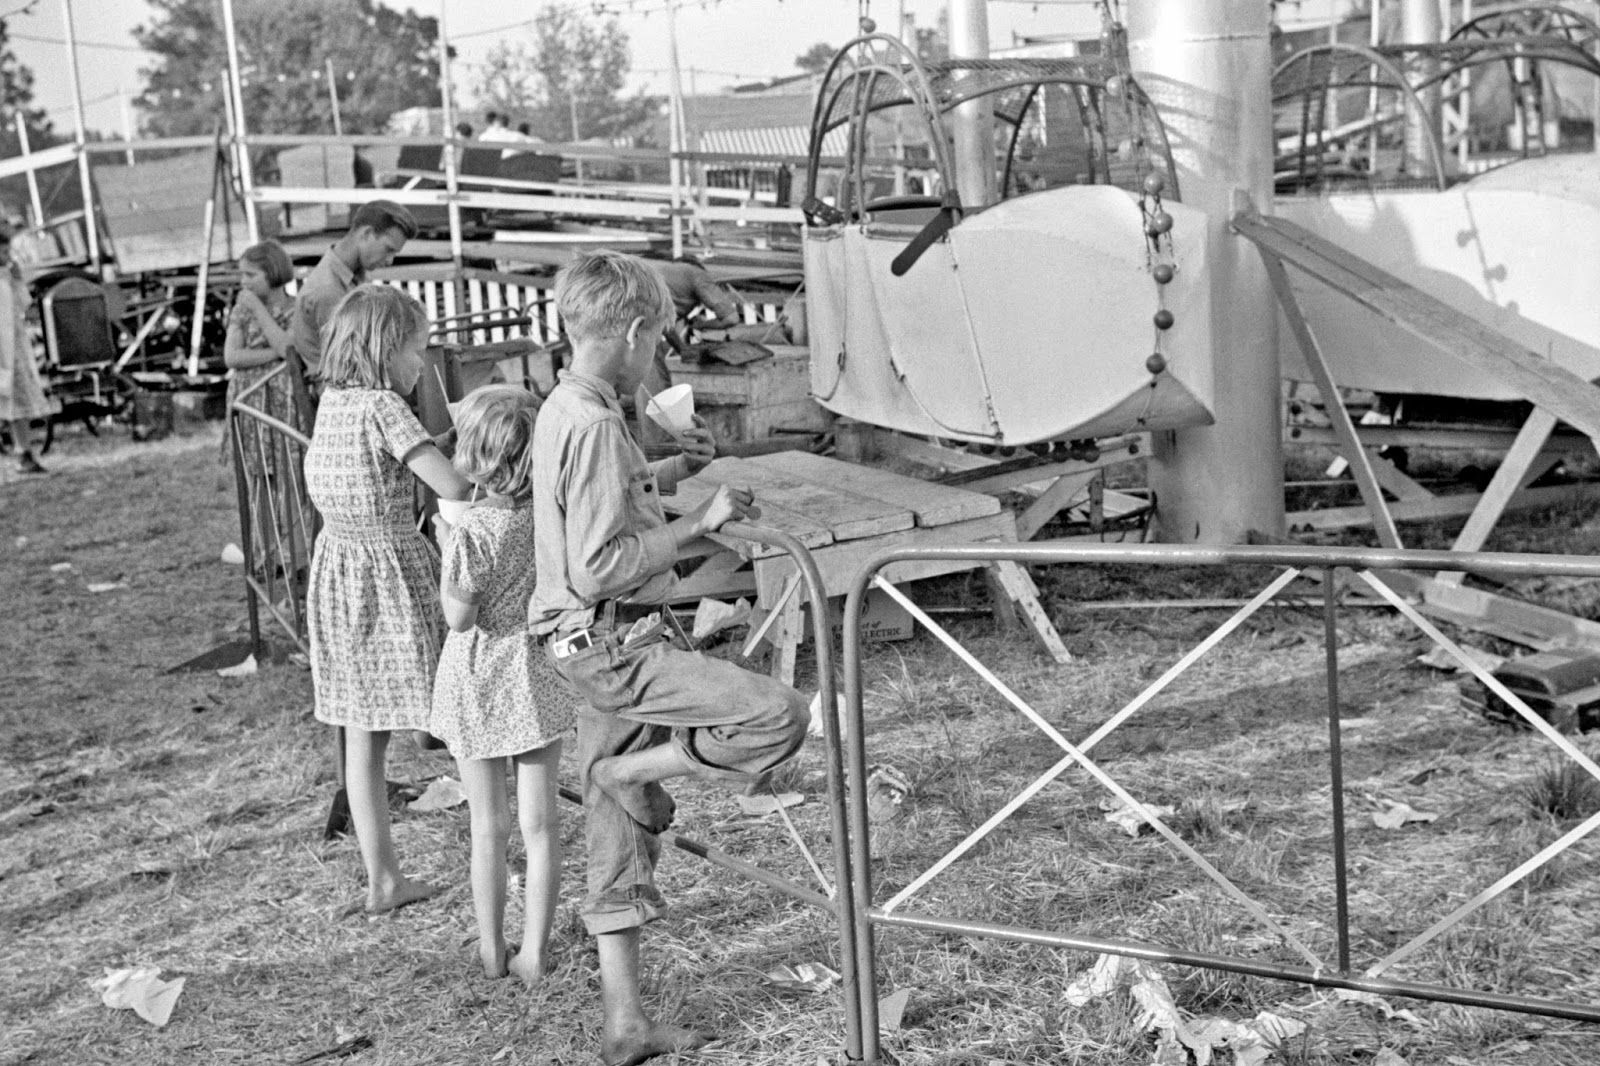 Plant City Florida Strawberry Festival And Carnival If You Look Closely At The Back Pants Pocket Of The Boy You Can Old Photos Florida State Fair Photo